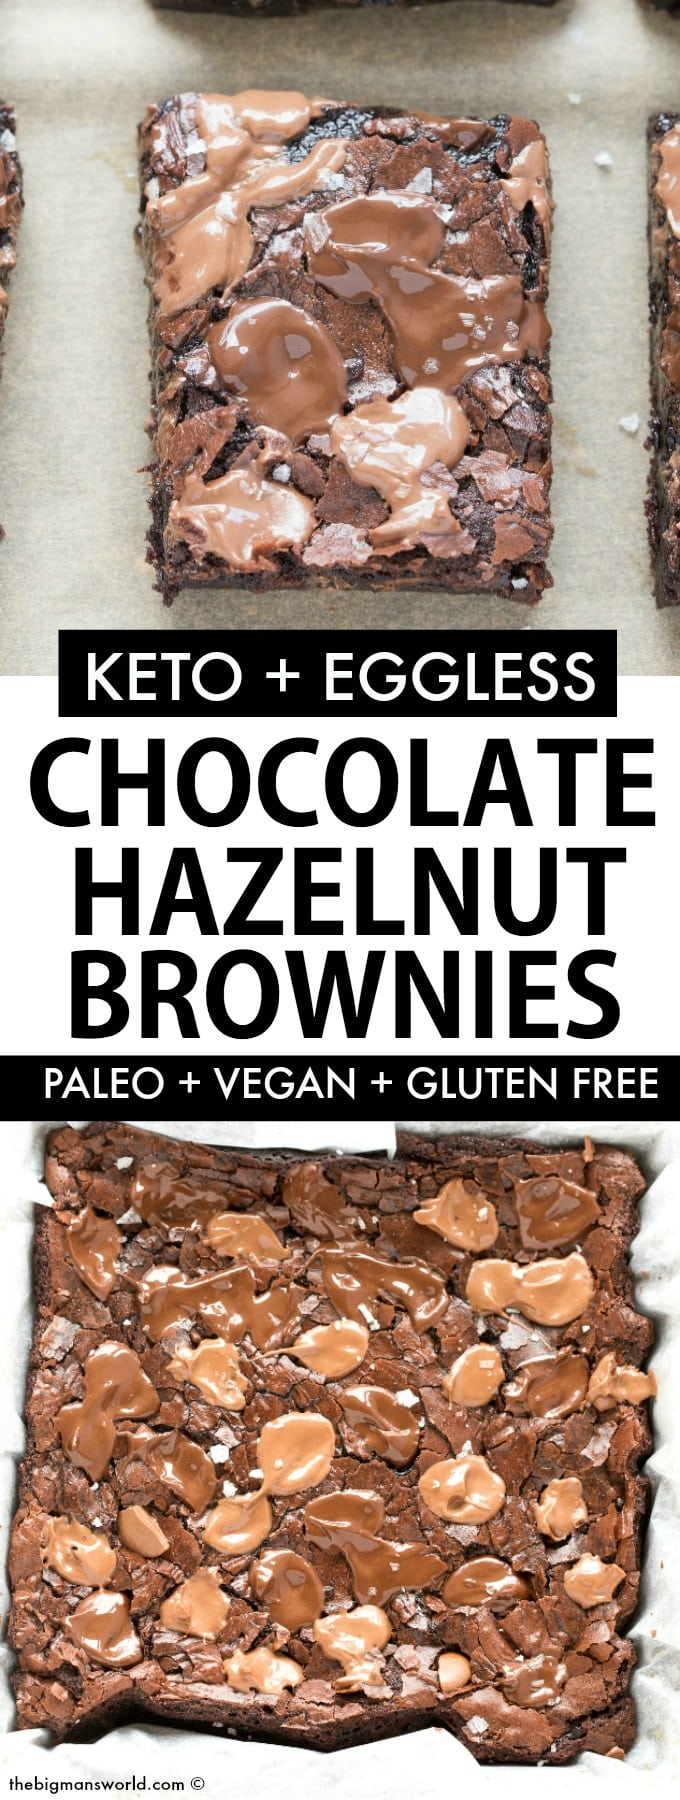 Healthy Chocolate Hazelnut Nutella Brownies that are paleo, vegan, keto and low carb- Eggless too!